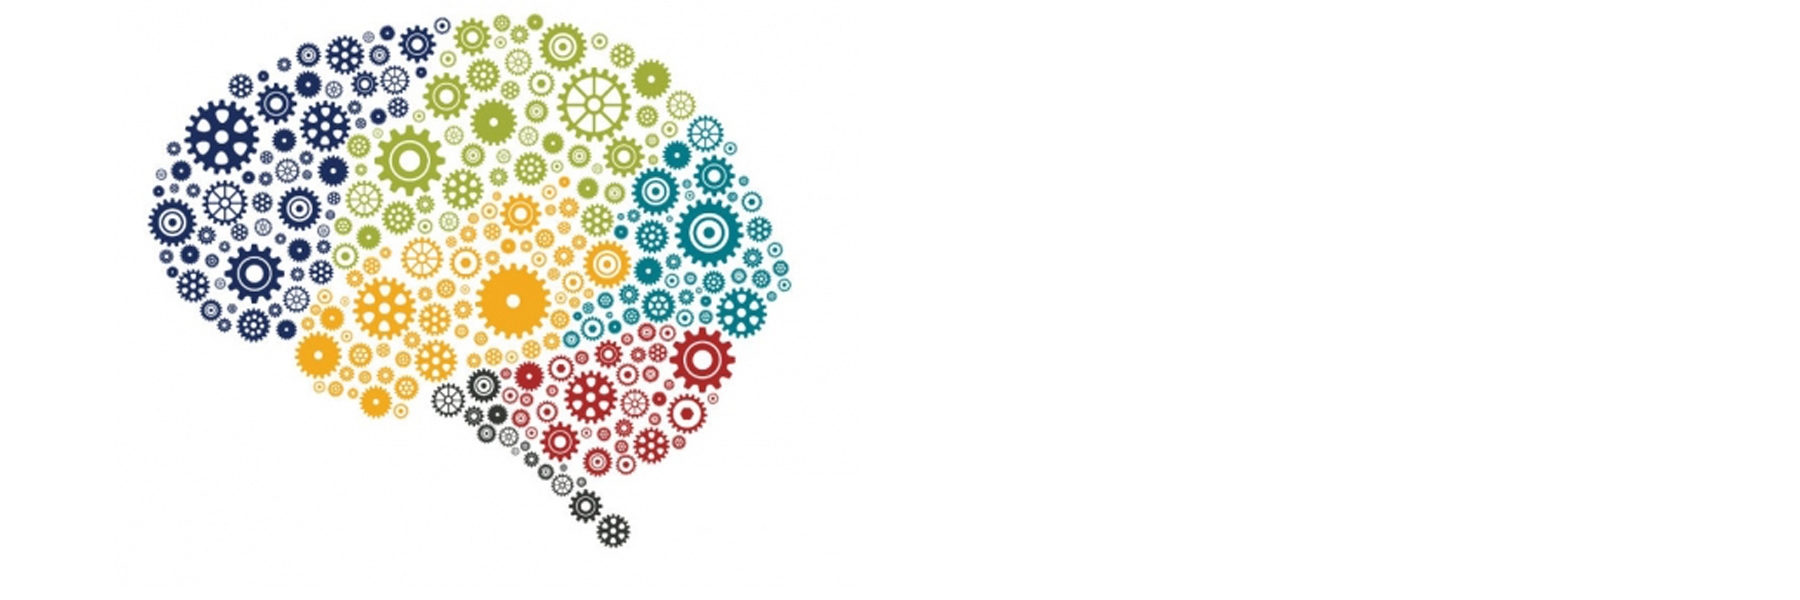 Multicolored gears form the shape and outline of a brain